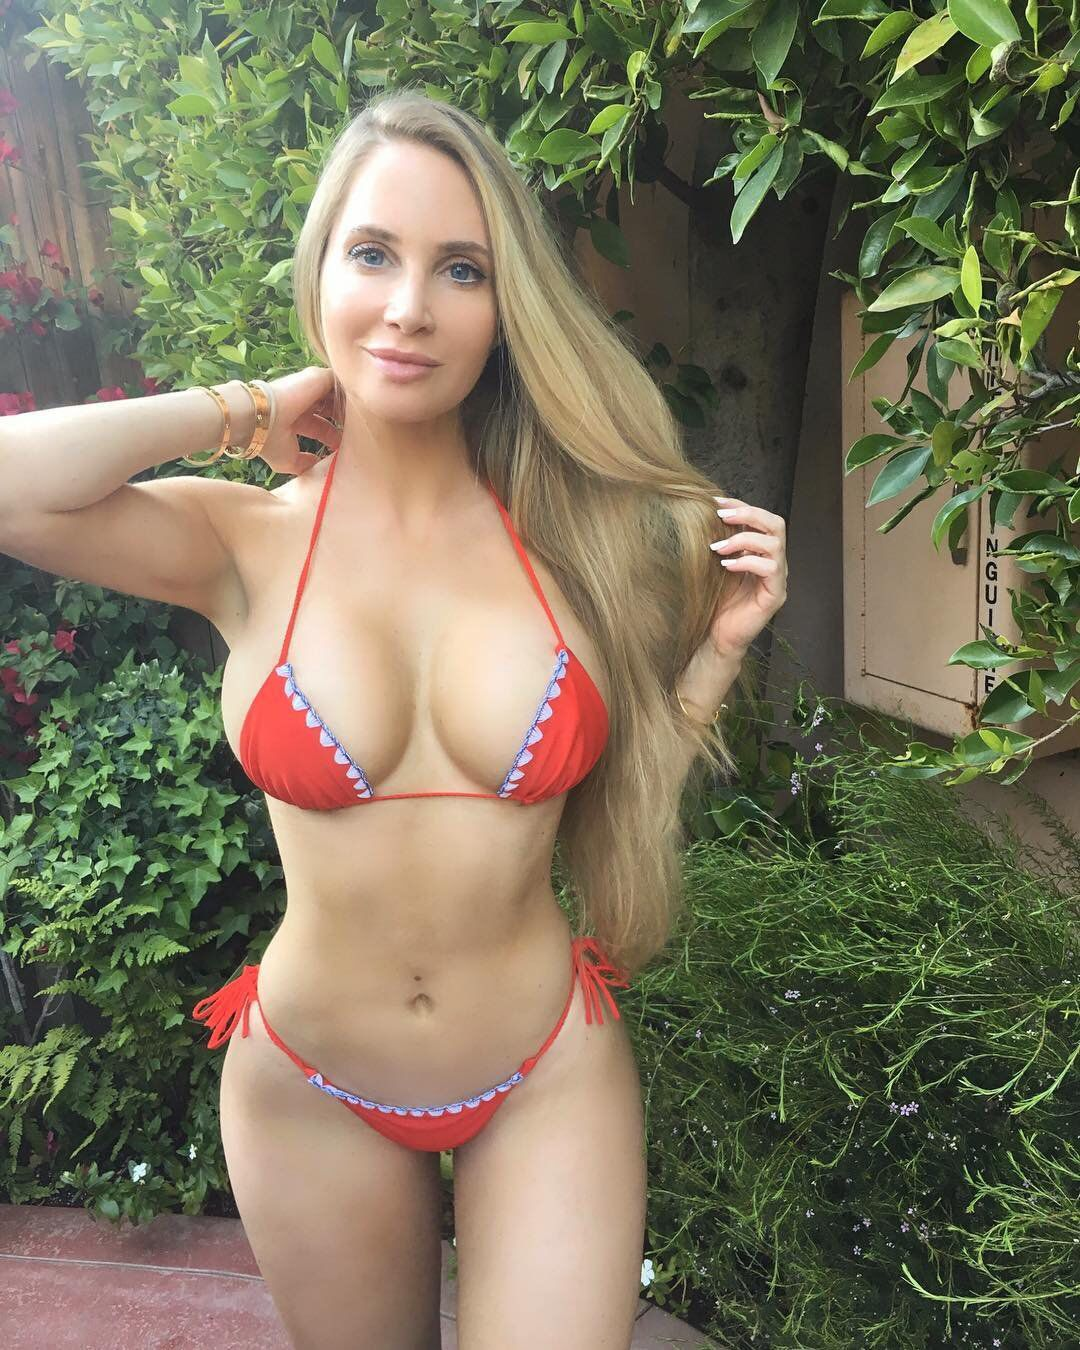 Pin by elvis on amanda elise lee pinterest fitness modeling and models - Pics of small little girls ...